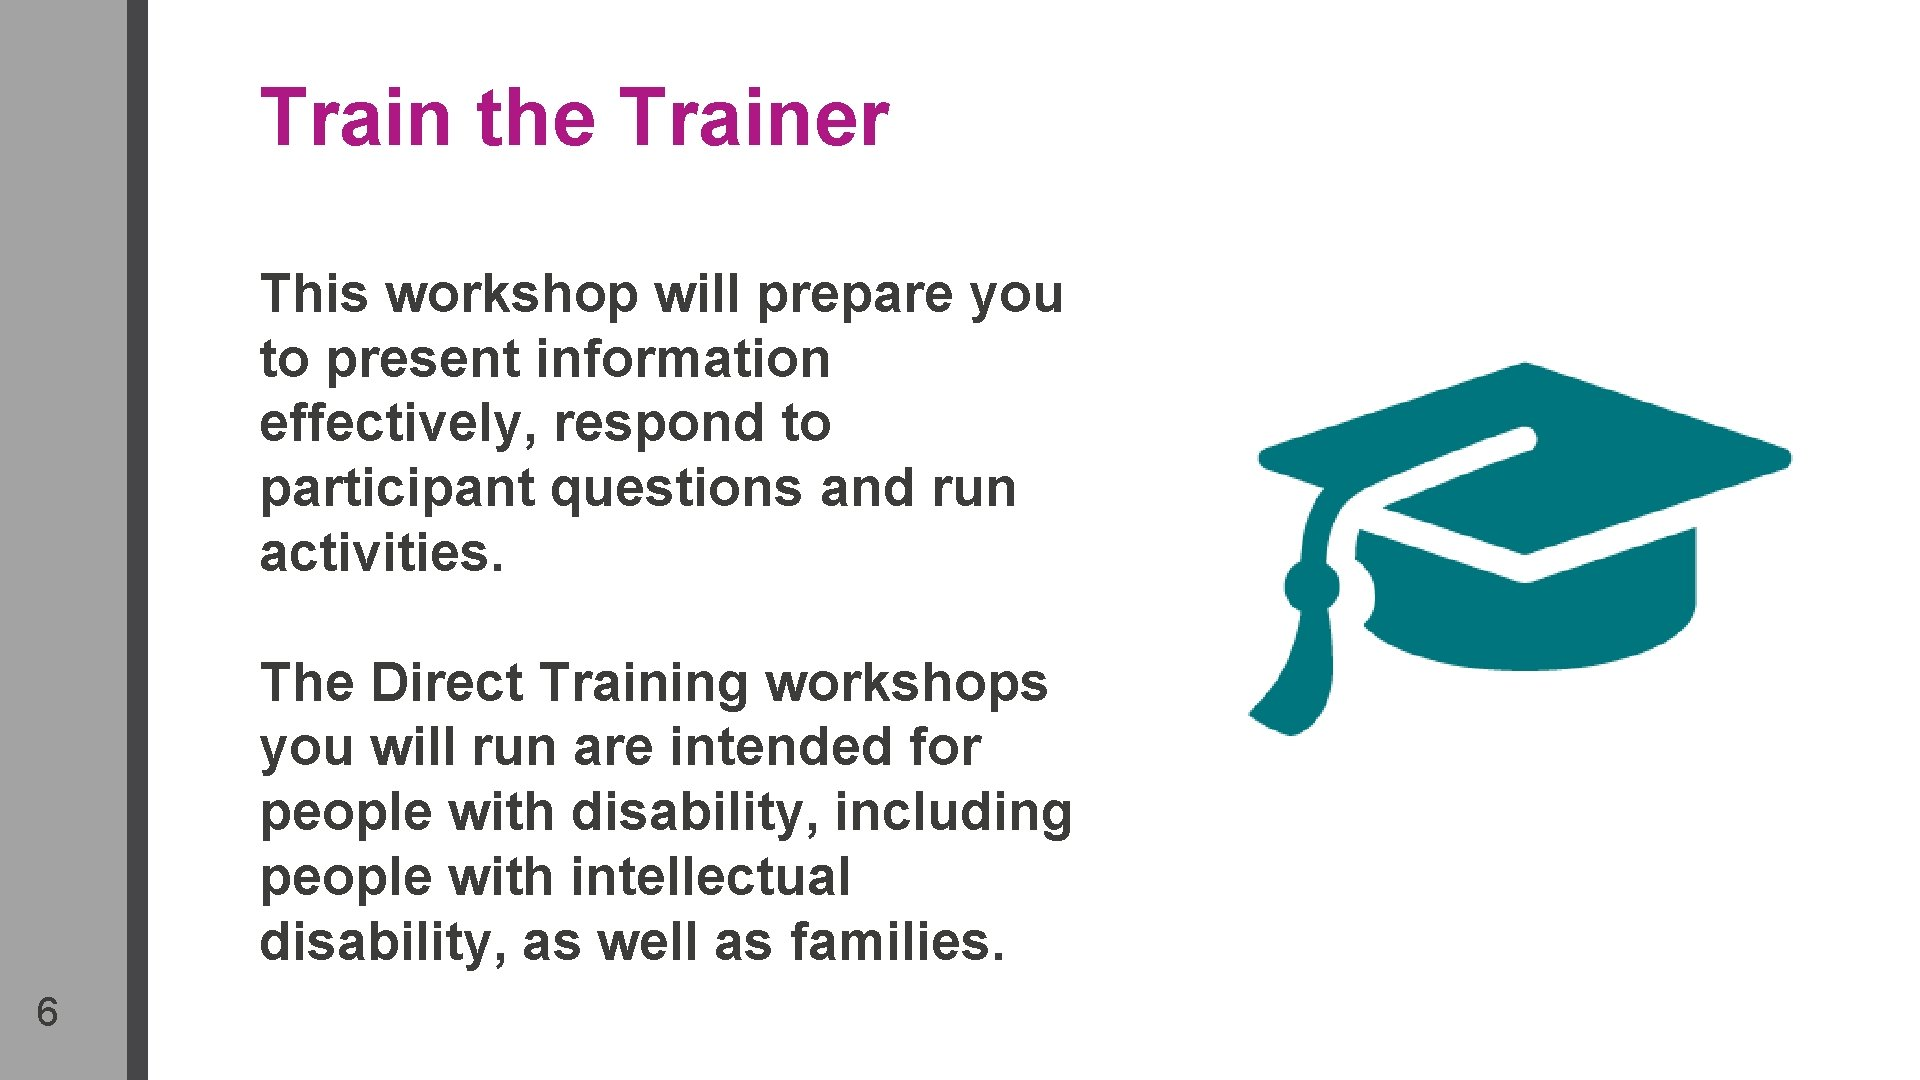 Train the Trainer This workshop will prepare you to present information effectively, respond to